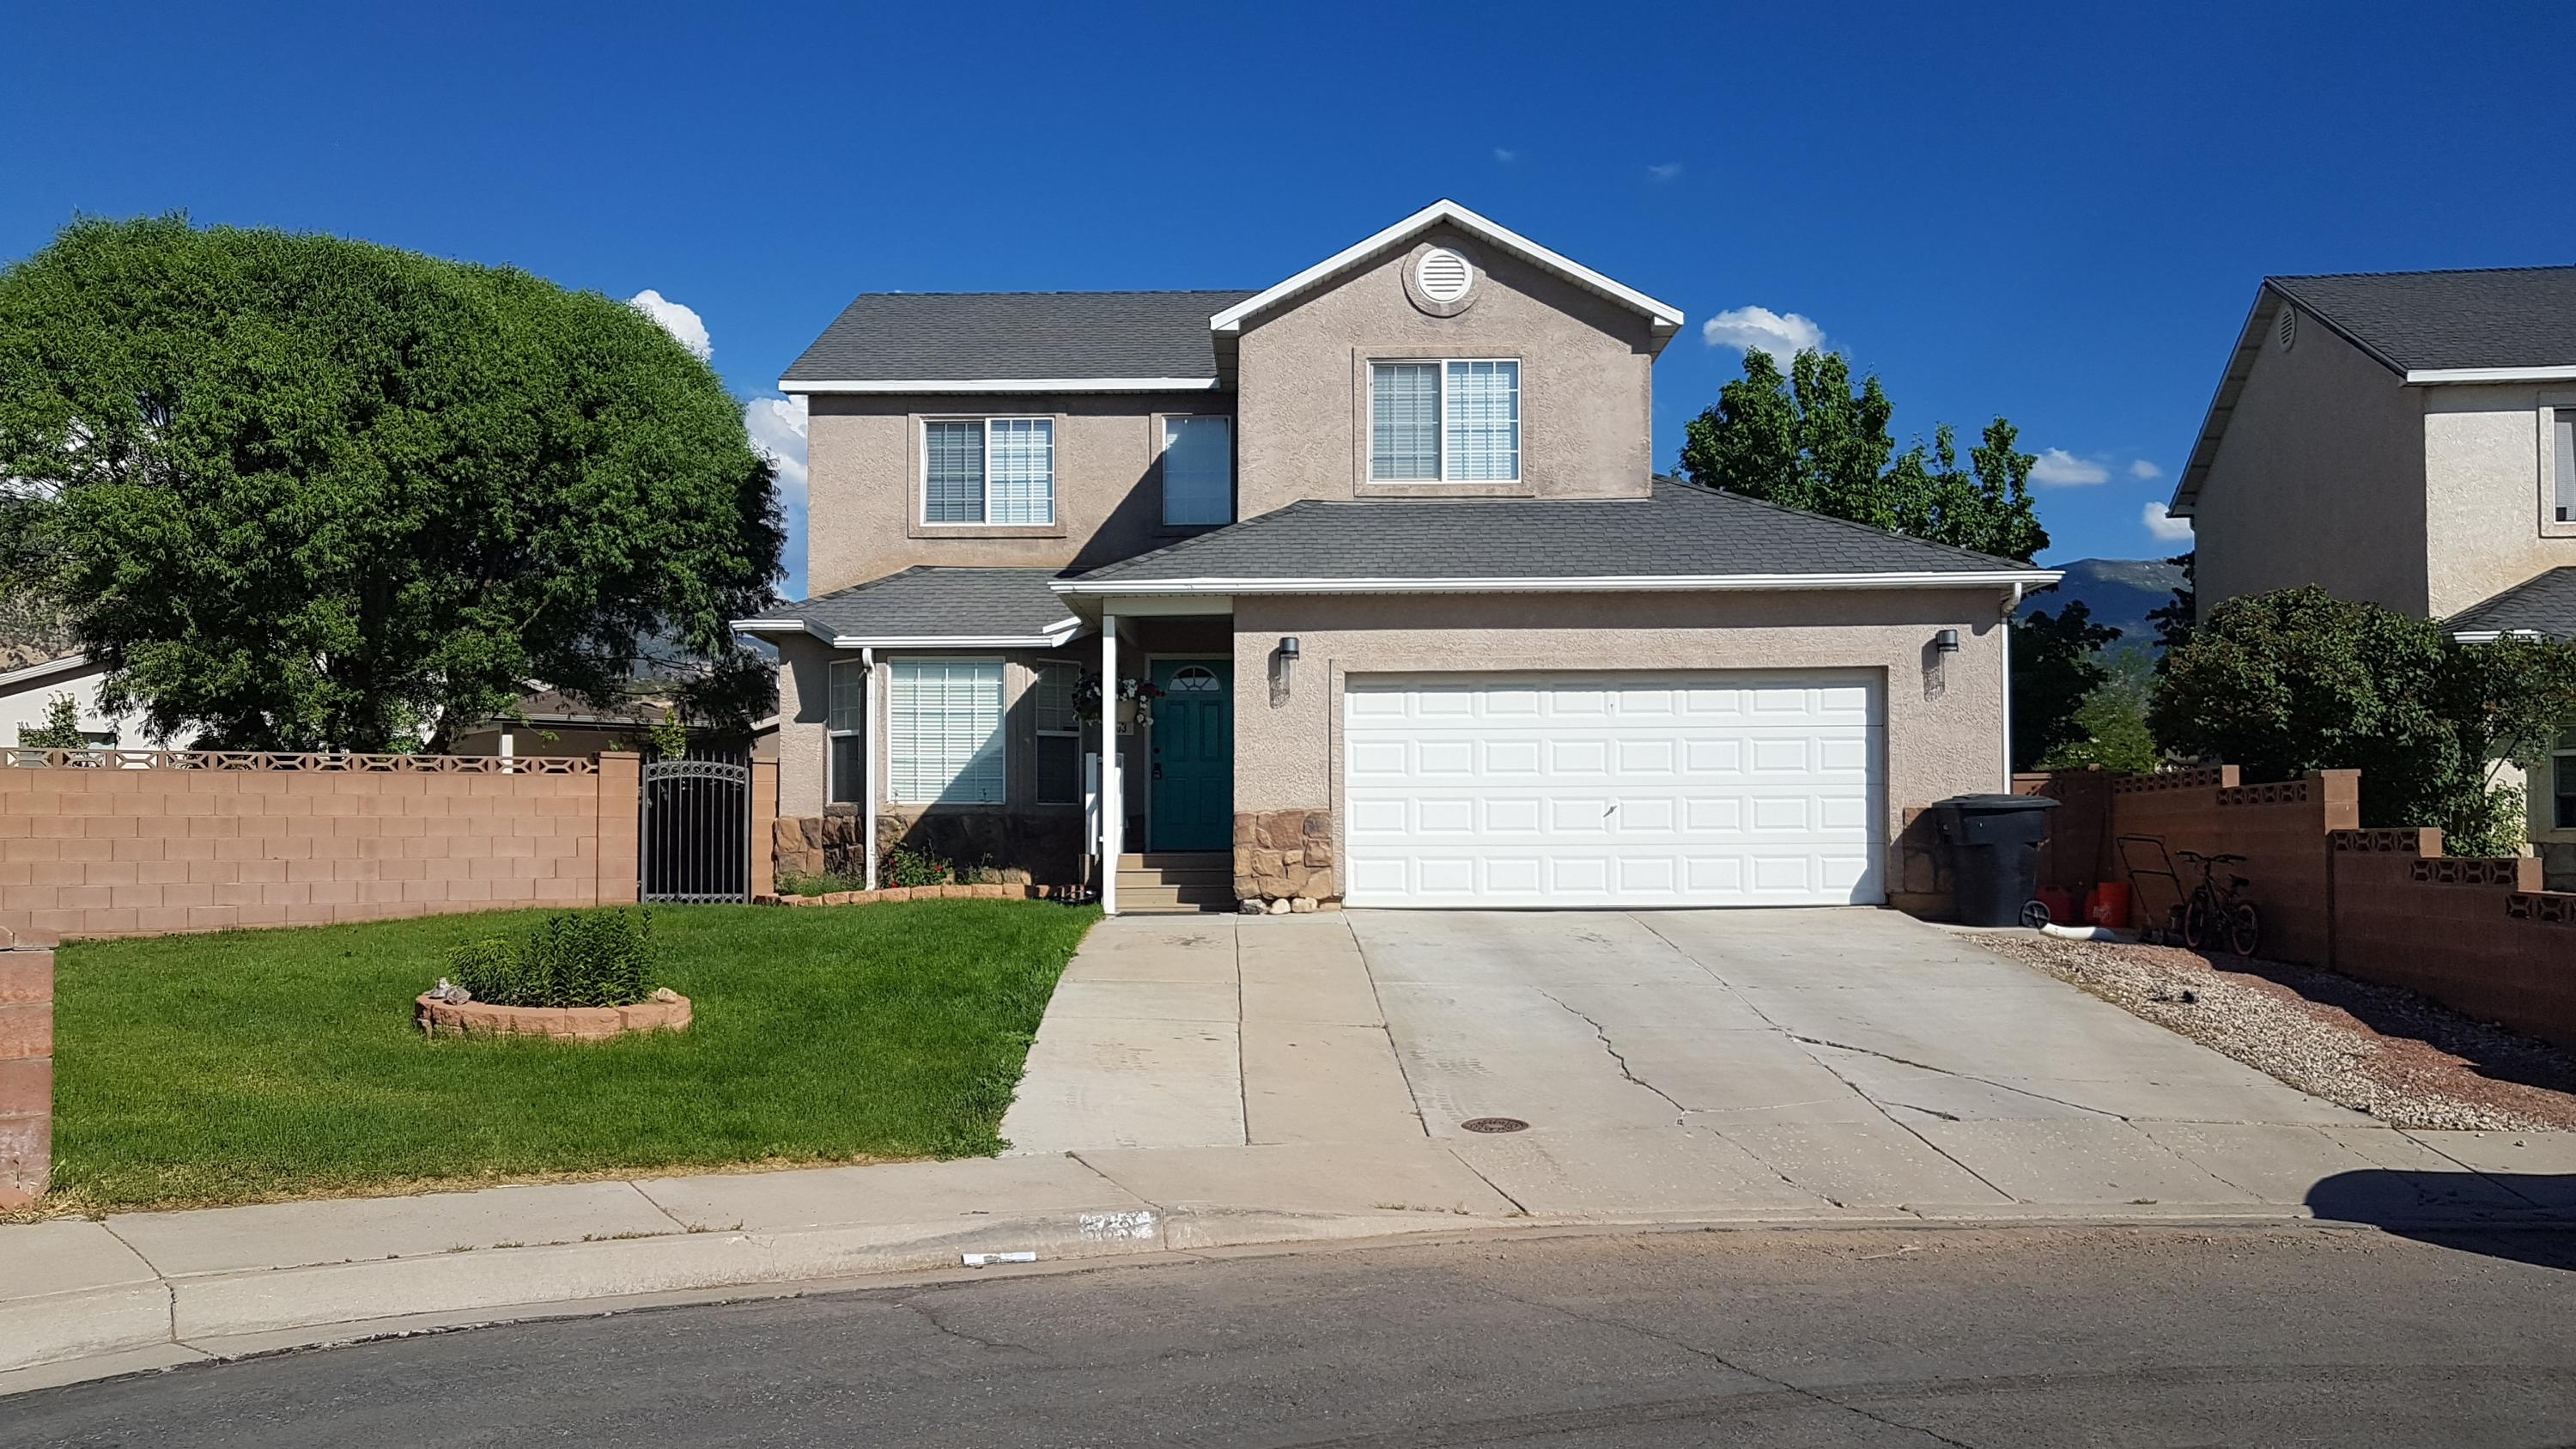 89192 563 1475 N CIR Cedar City UT